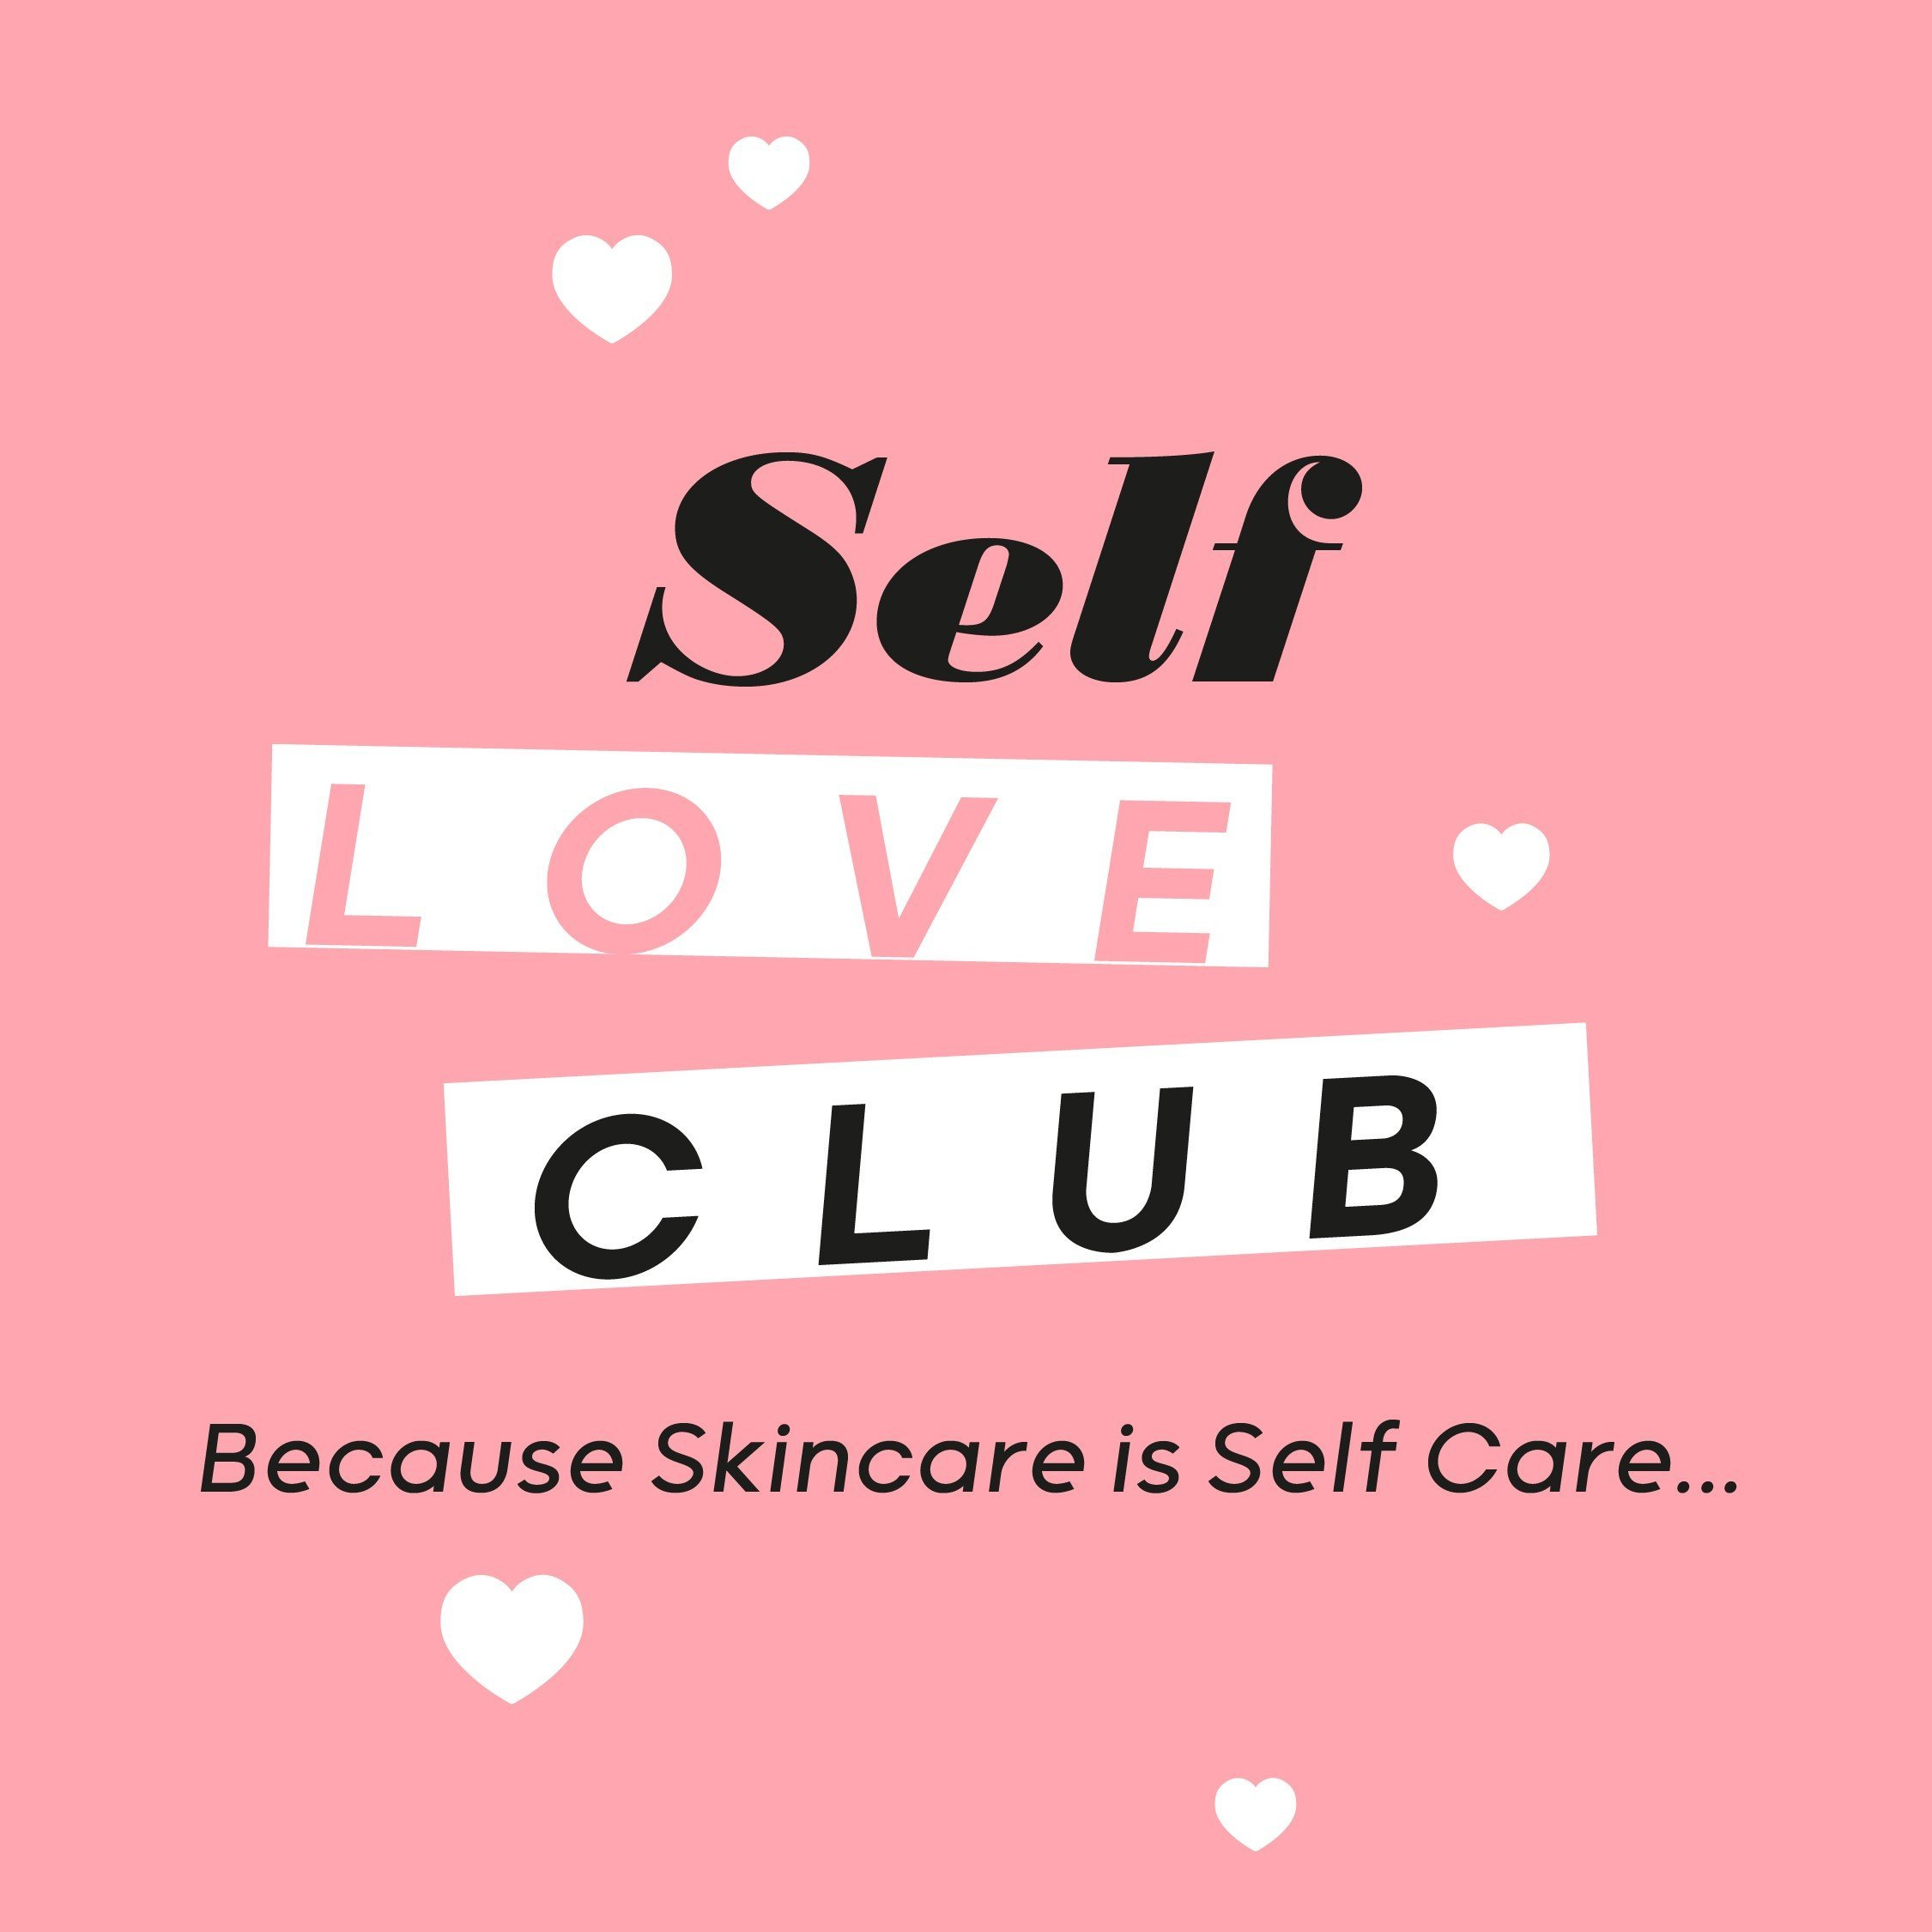 What is self-care and how do you practice it?